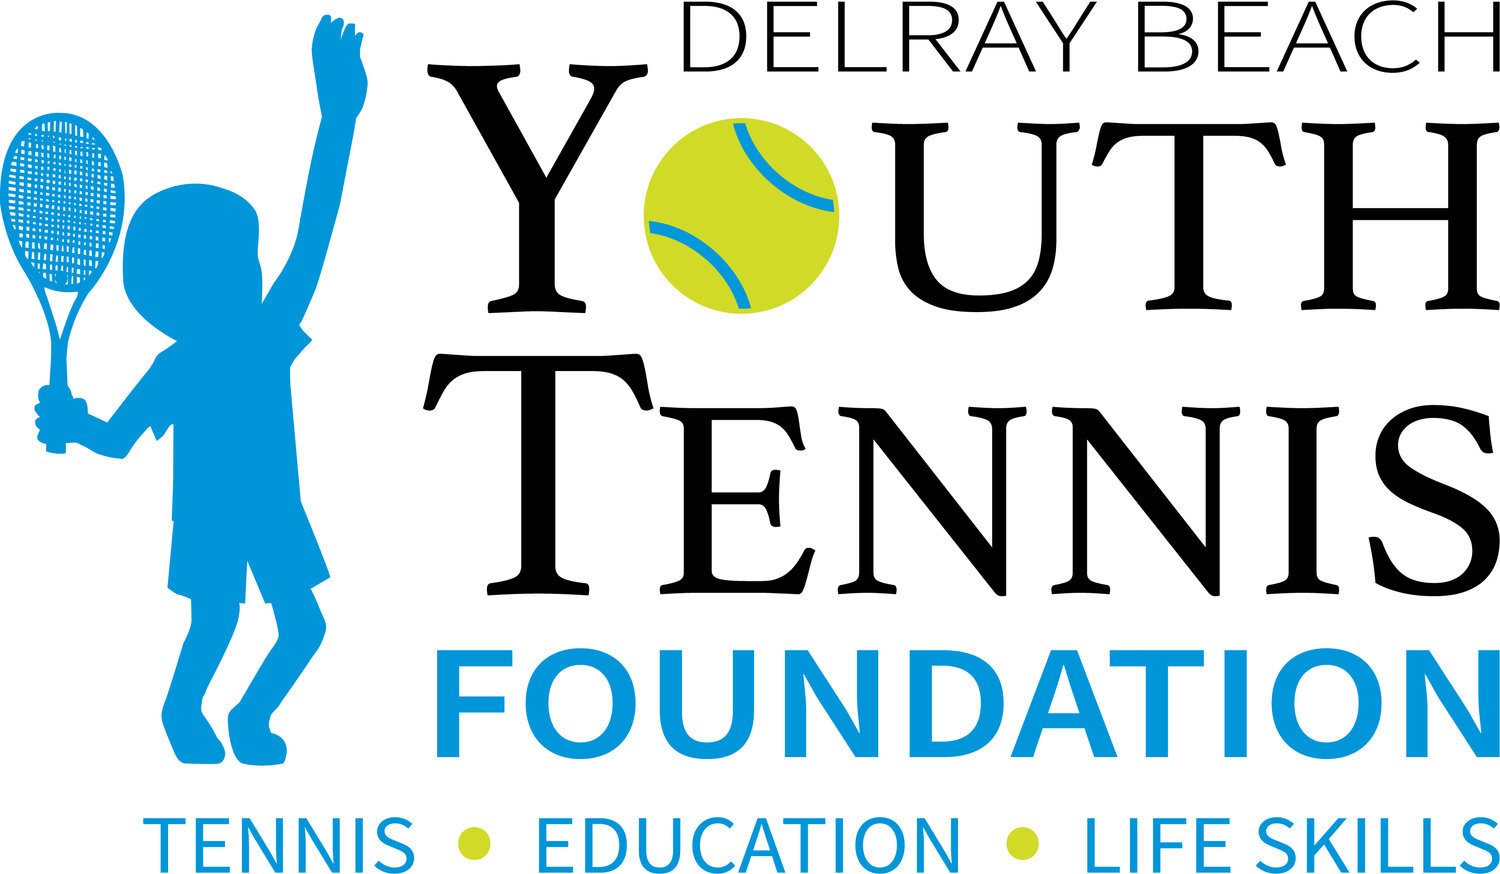 Delray Beach Youth Tennis Foundation